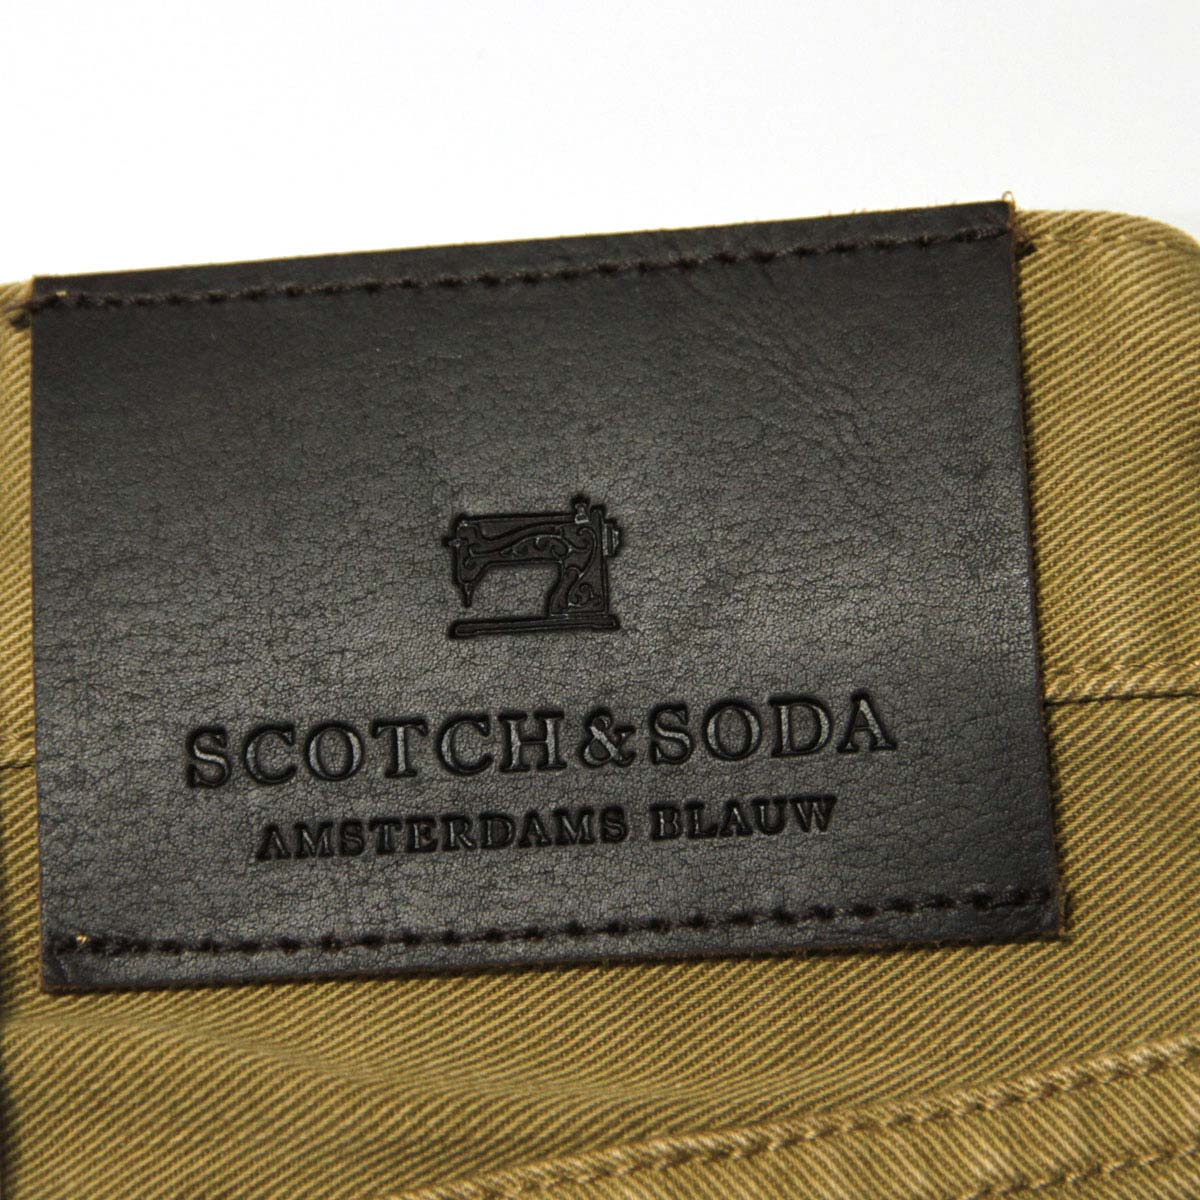 scotch_soda_16